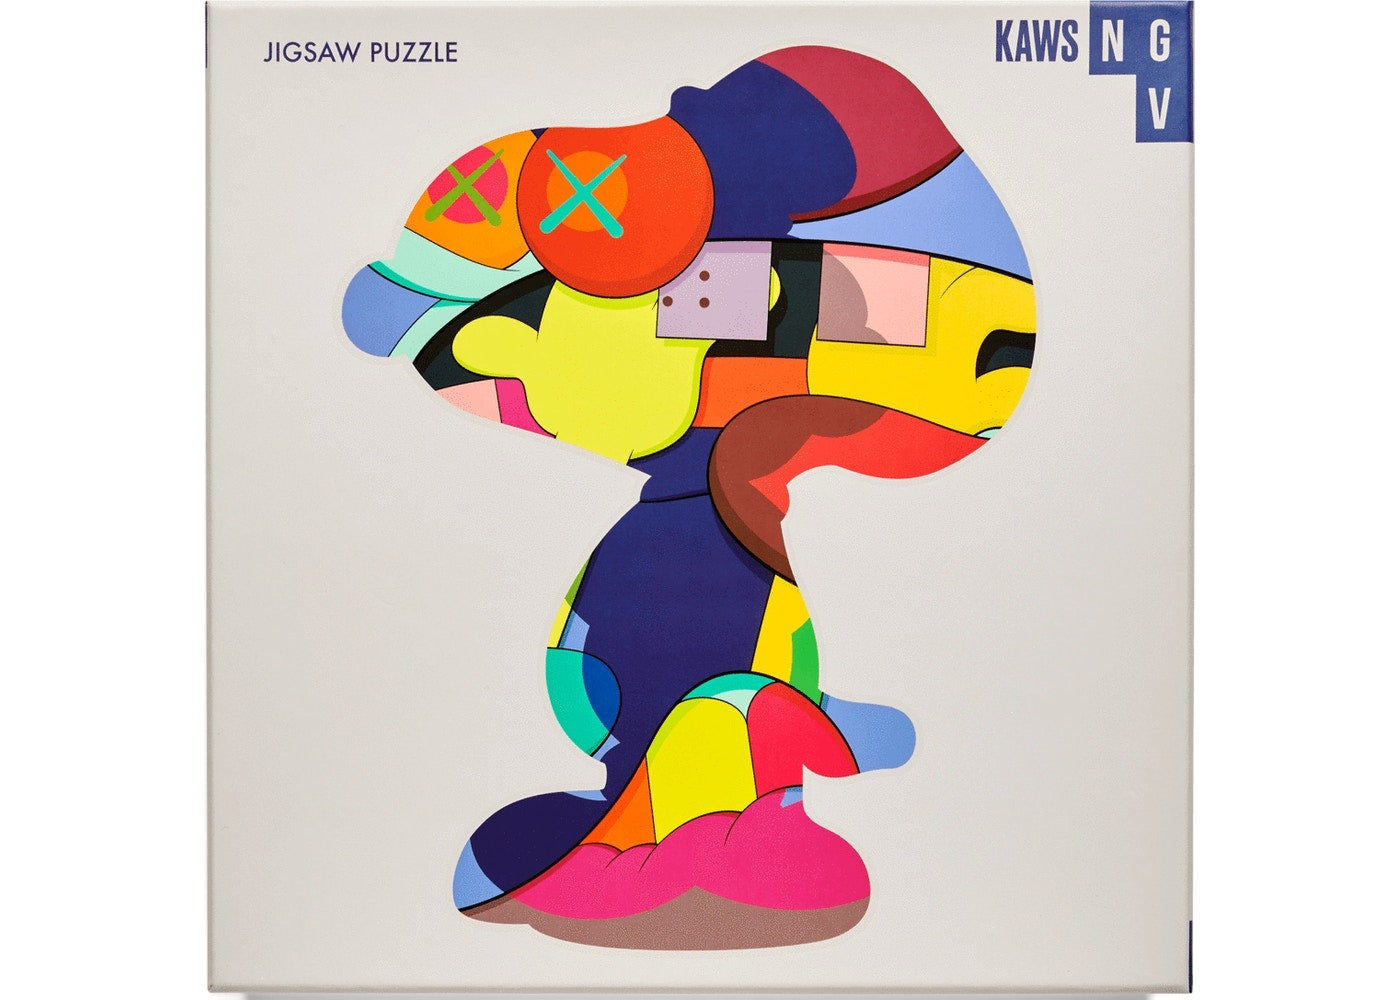 Image of Kaws Puzzle No ones's Home